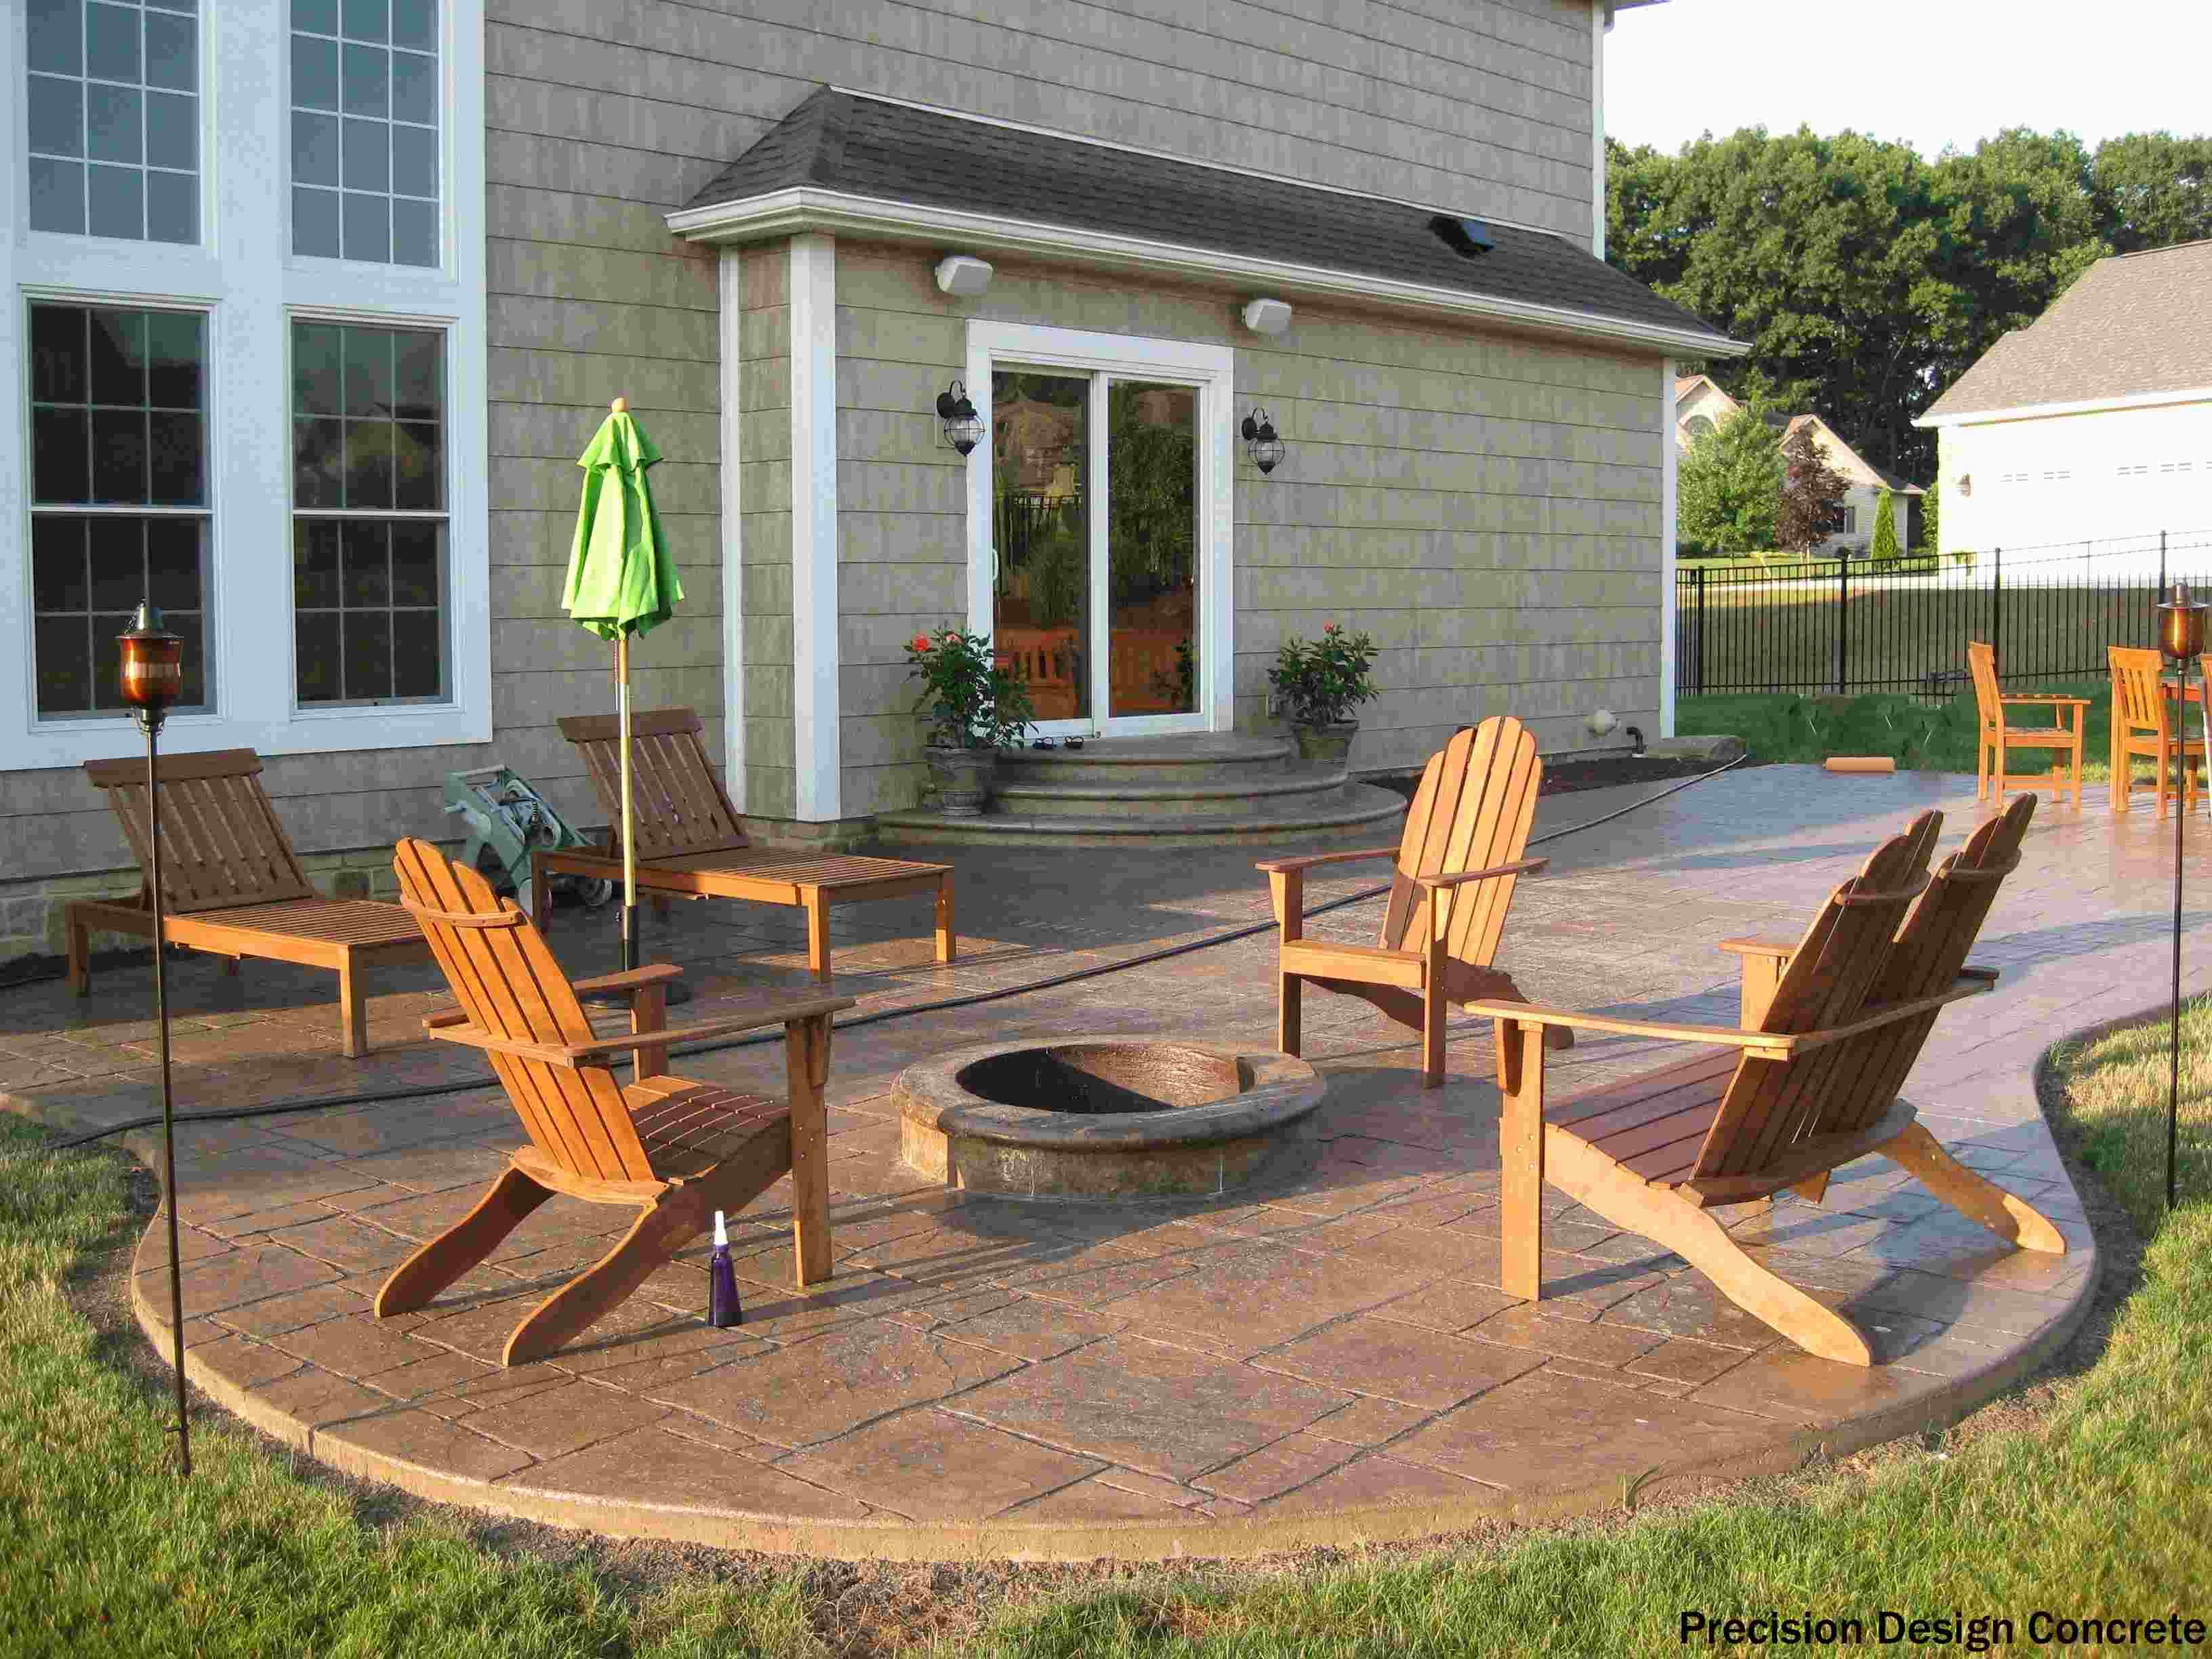 A Cobblestone Patio And In Ground Fire Pit Are Winners Is Our Book. Average